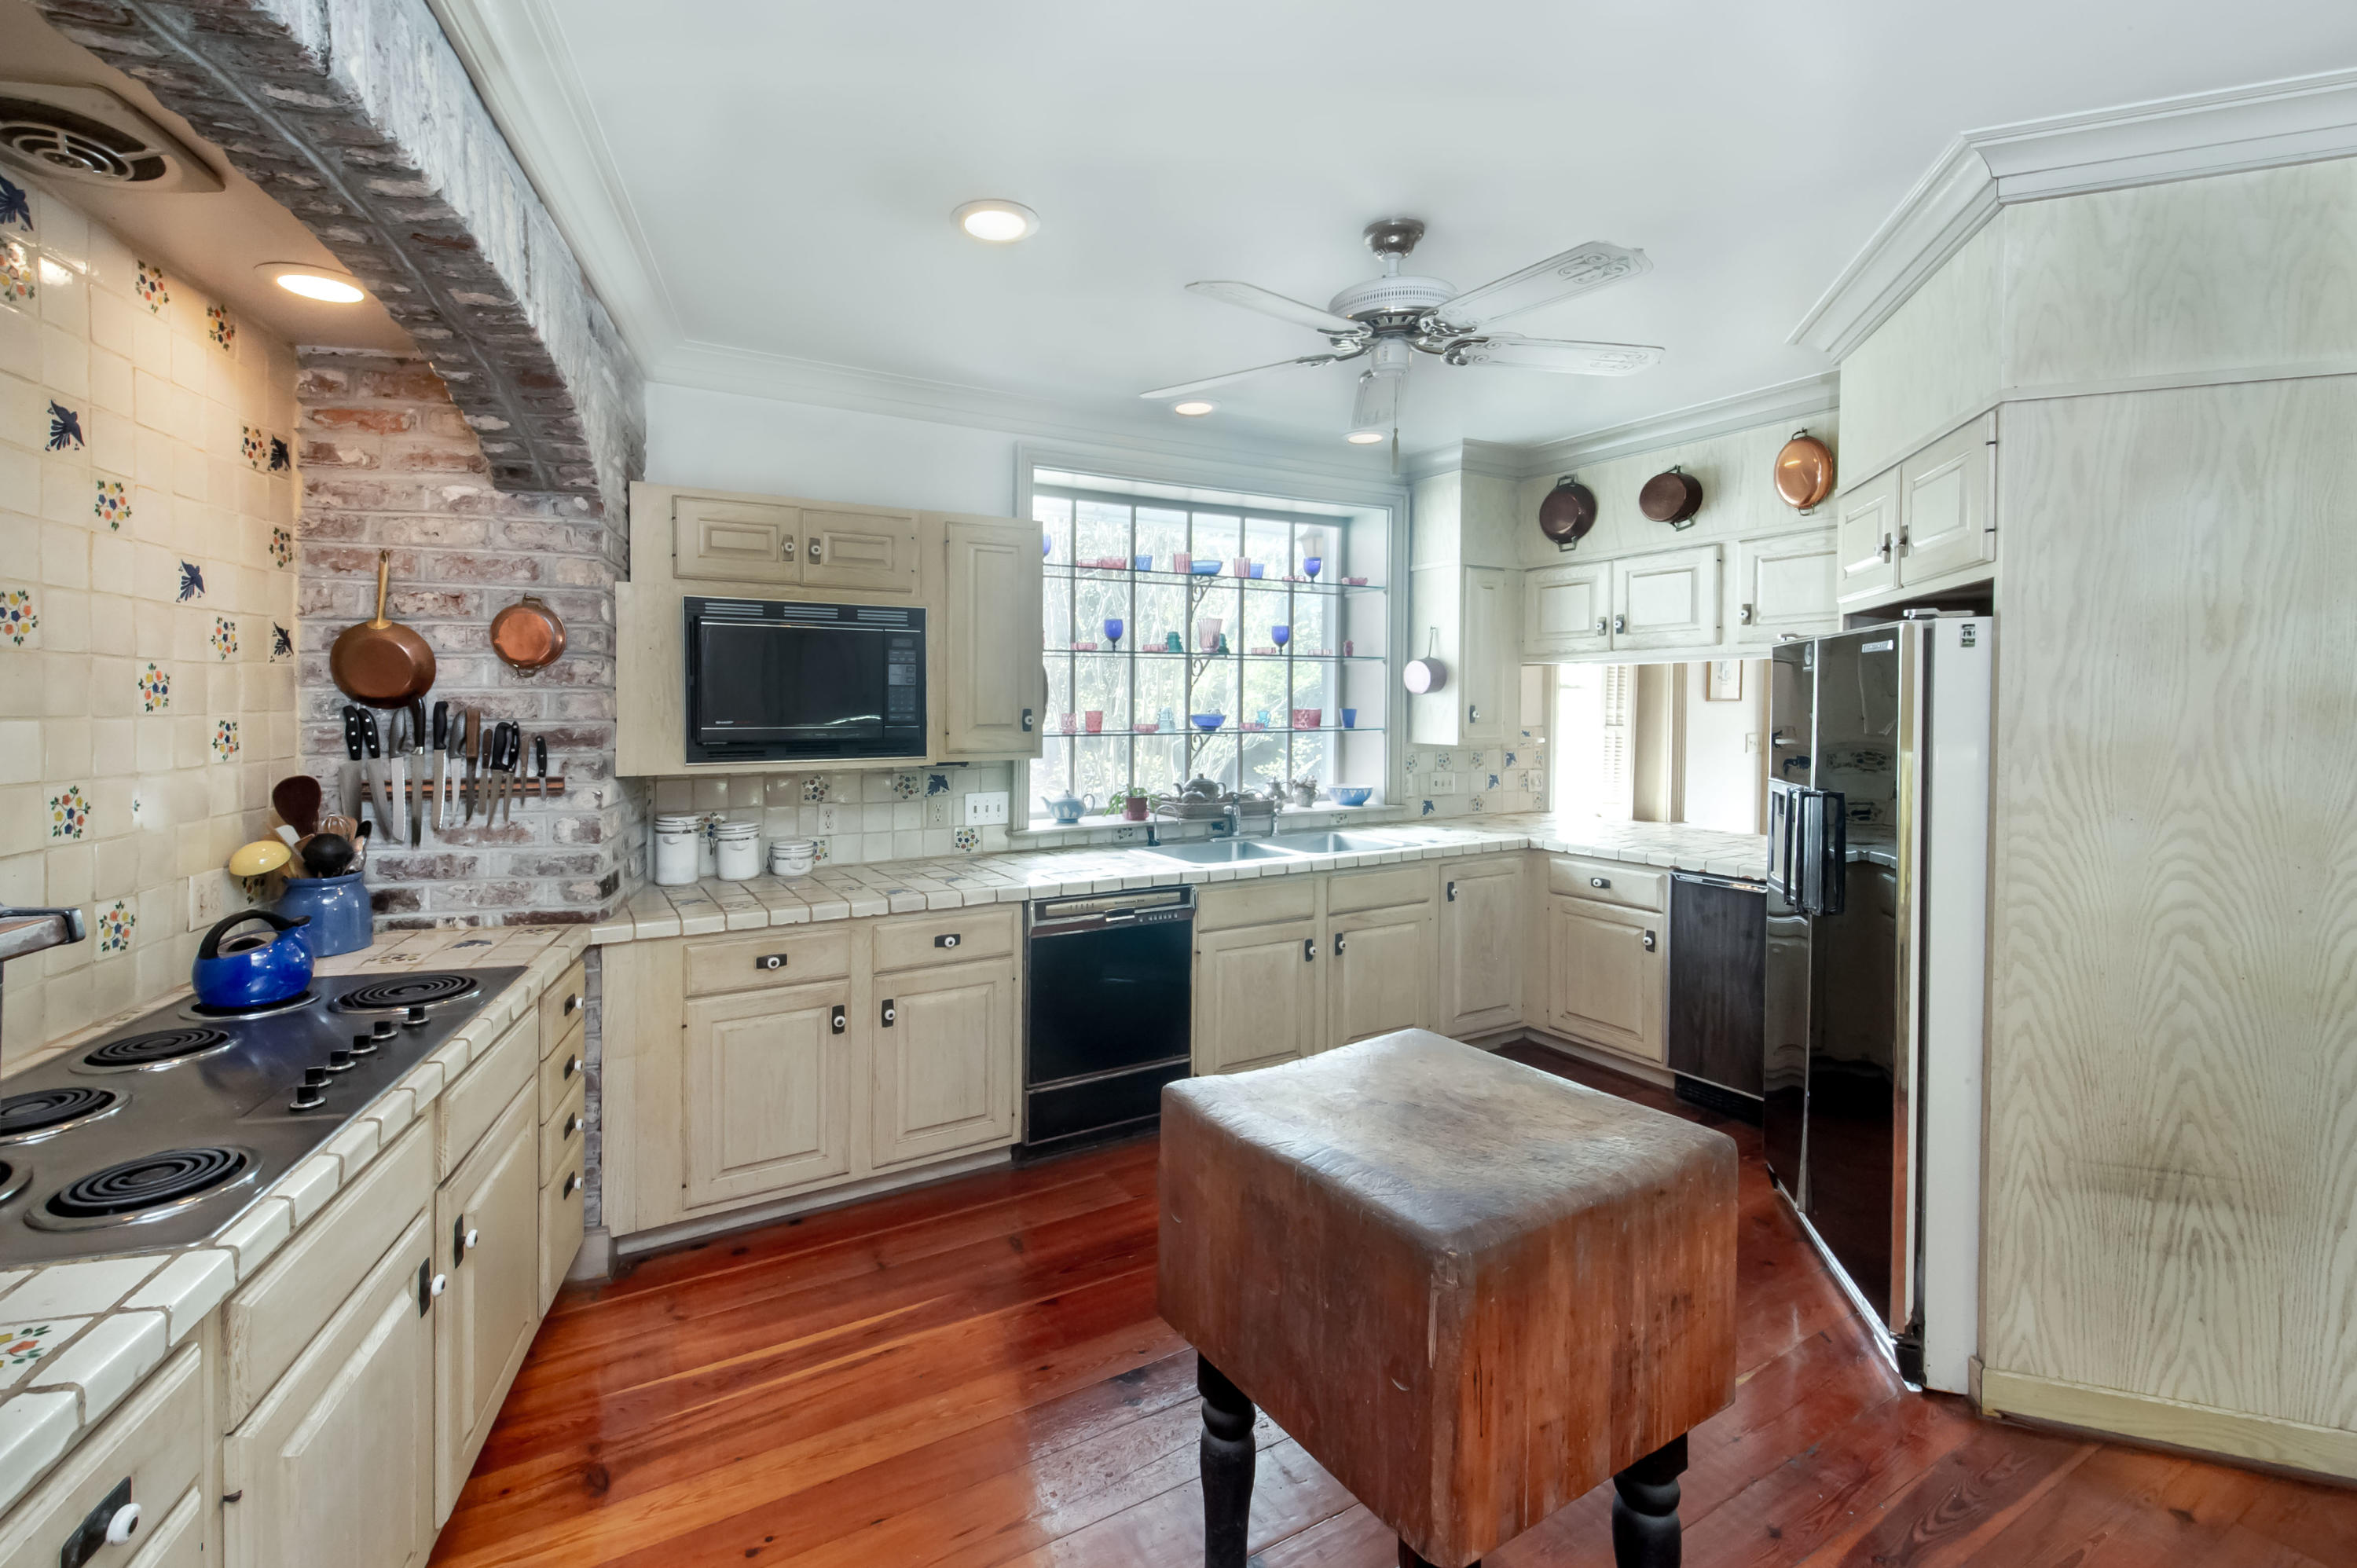 South of Broad Homes For Sale - 26 South Battery, Charleston, SC - 20